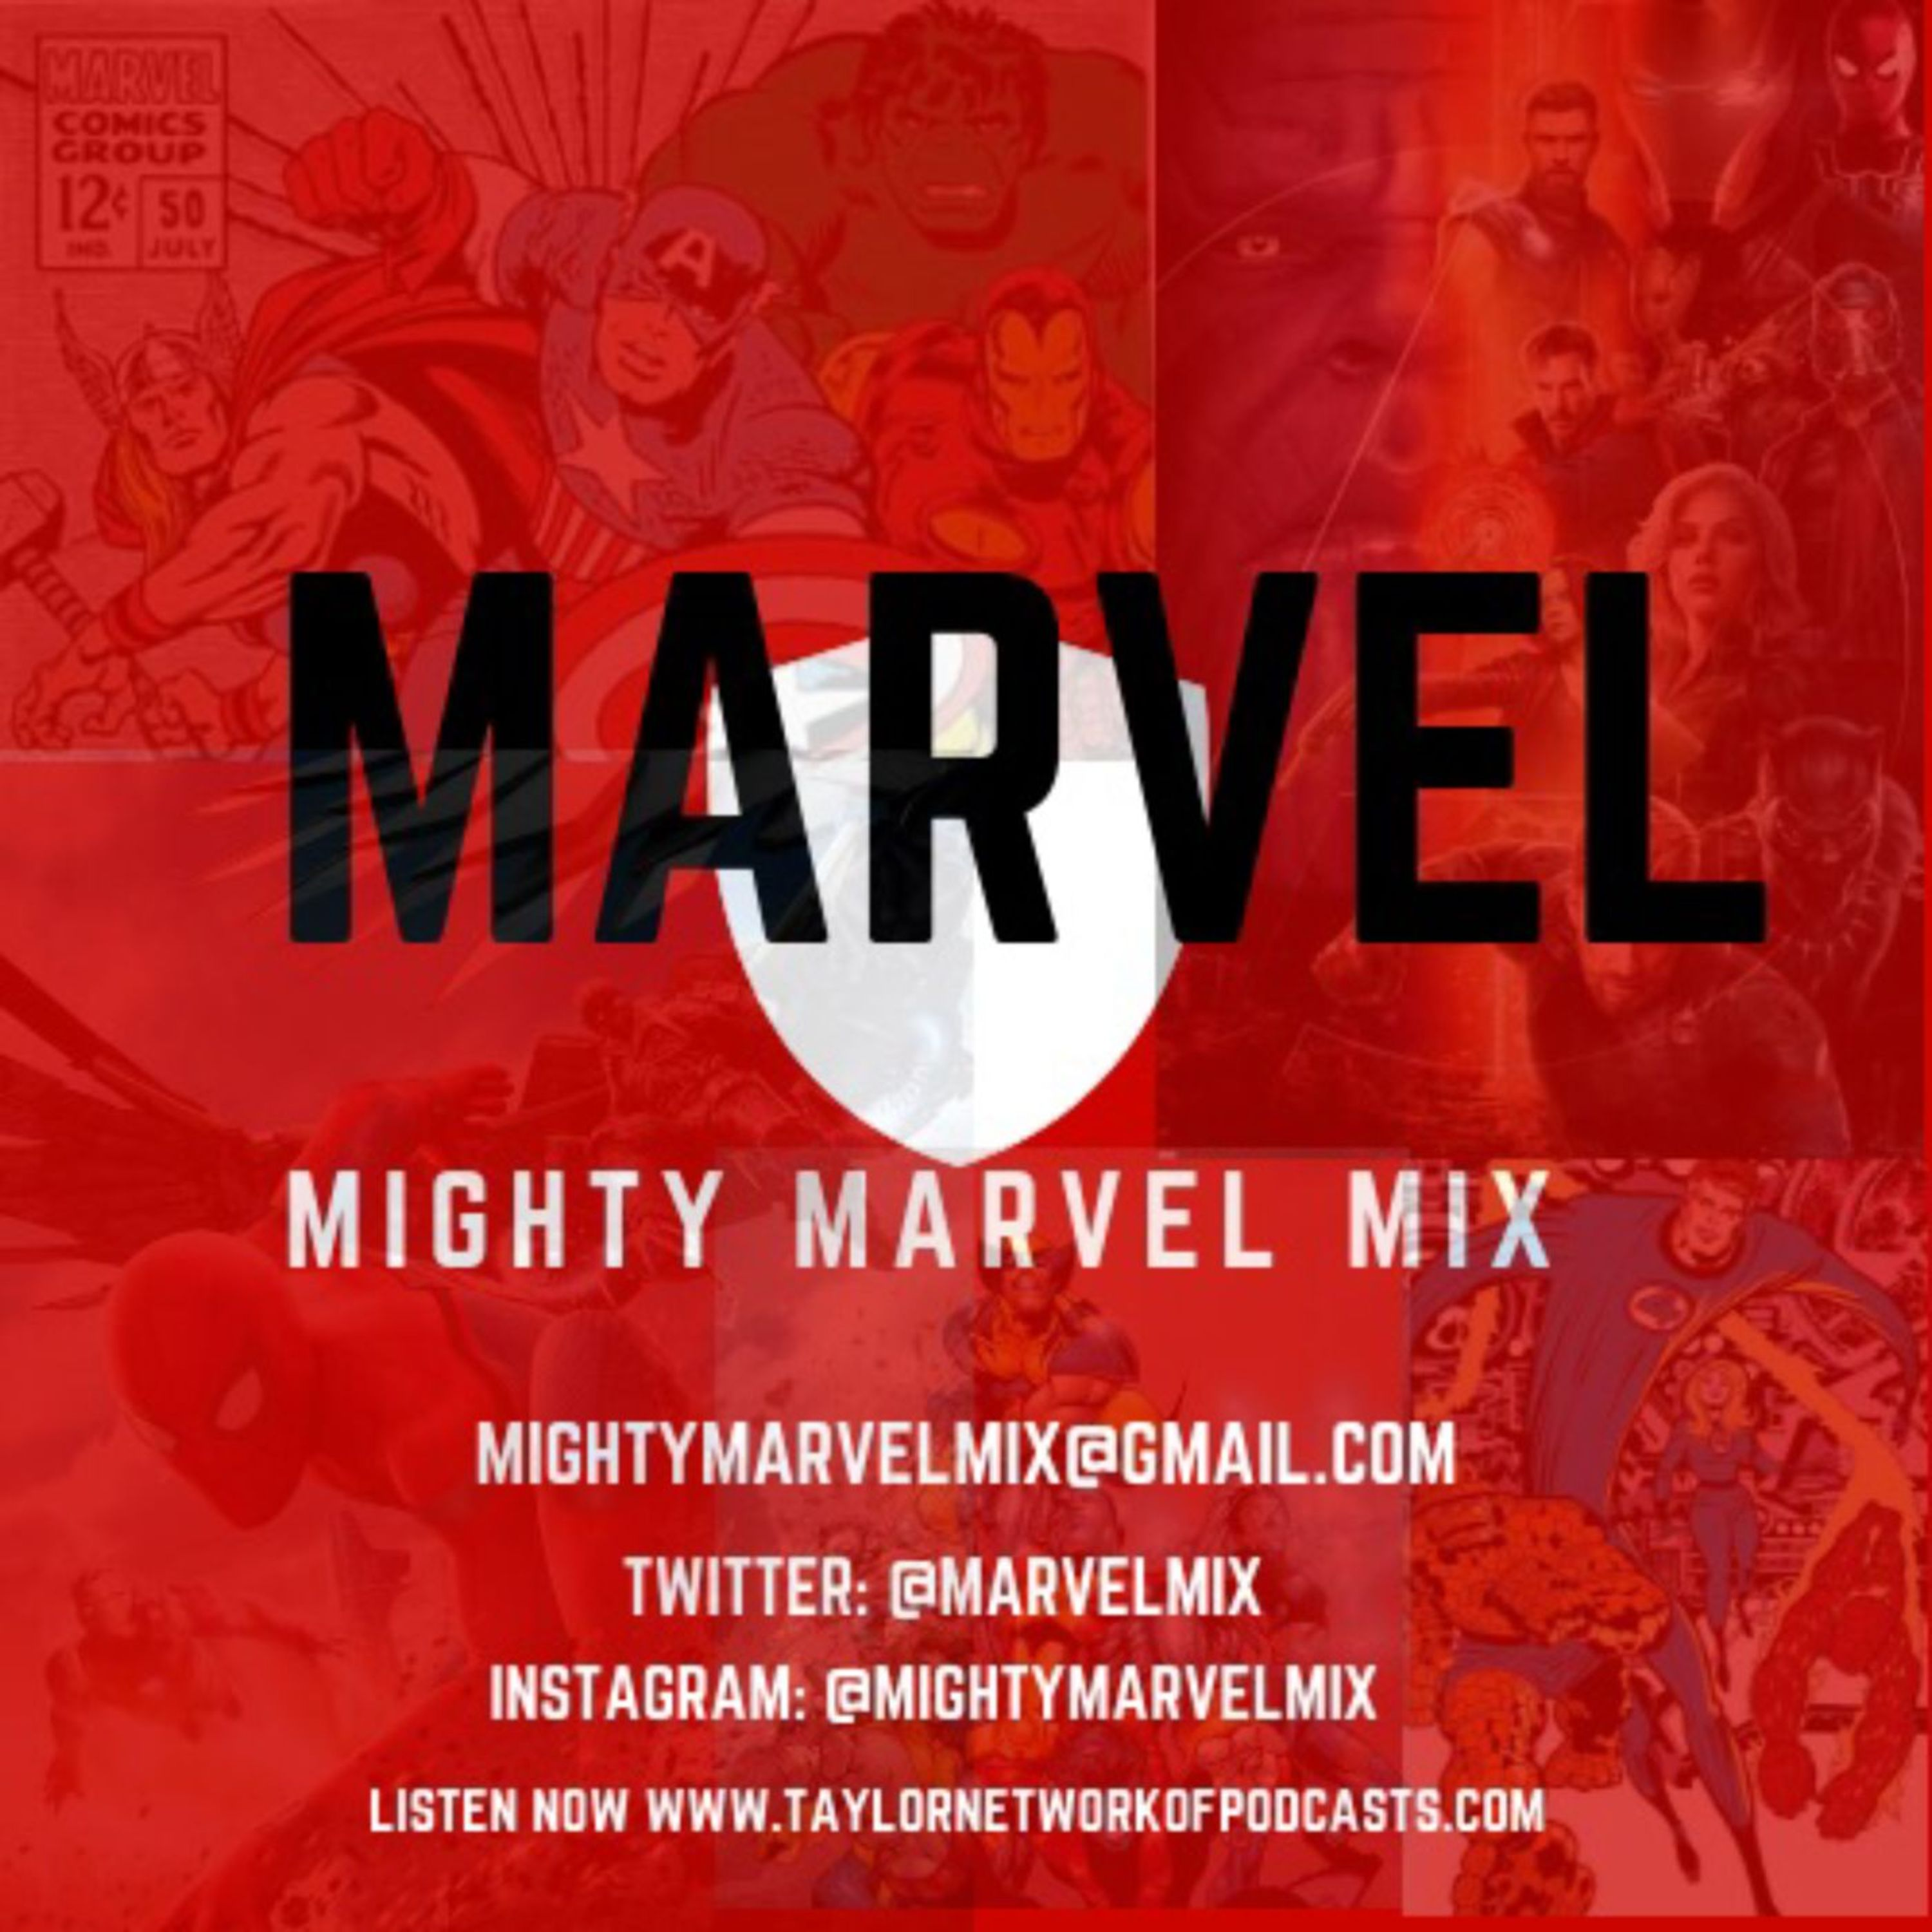 Mighty Marvel Mix Episode 38 Finales